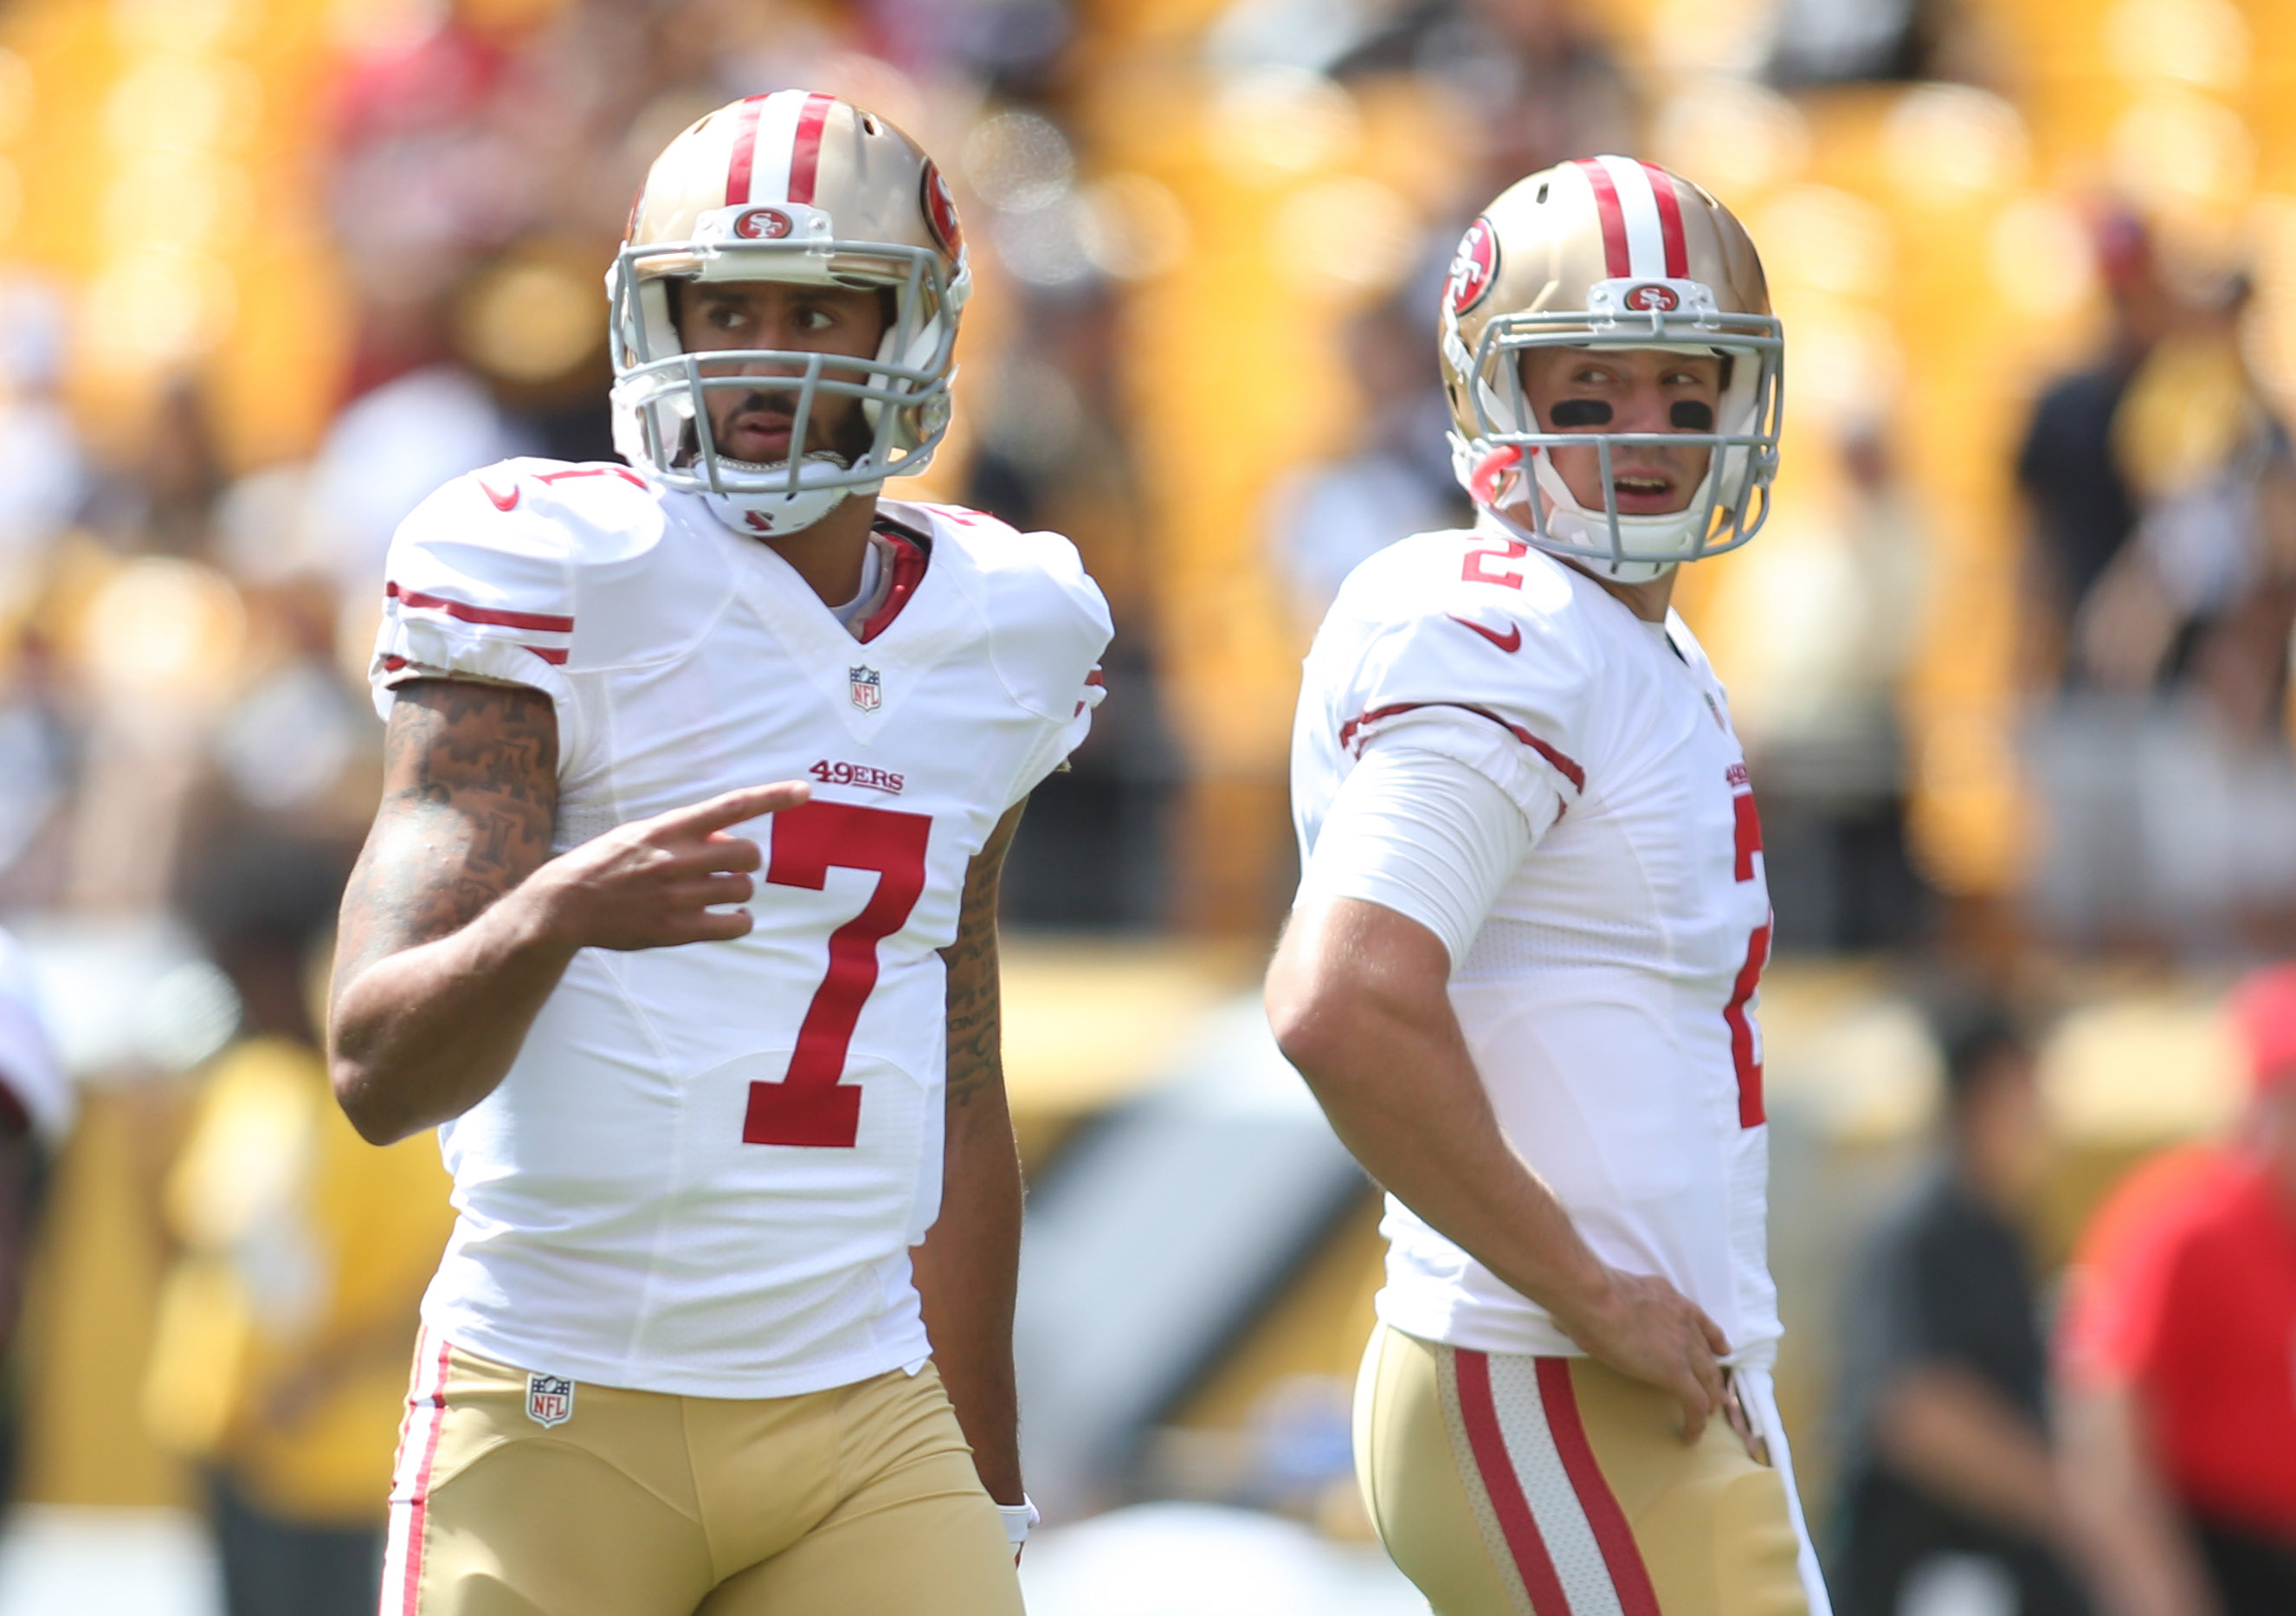 8817959-nfl-san-francisco-49ers-at-pittsburgh-steelers